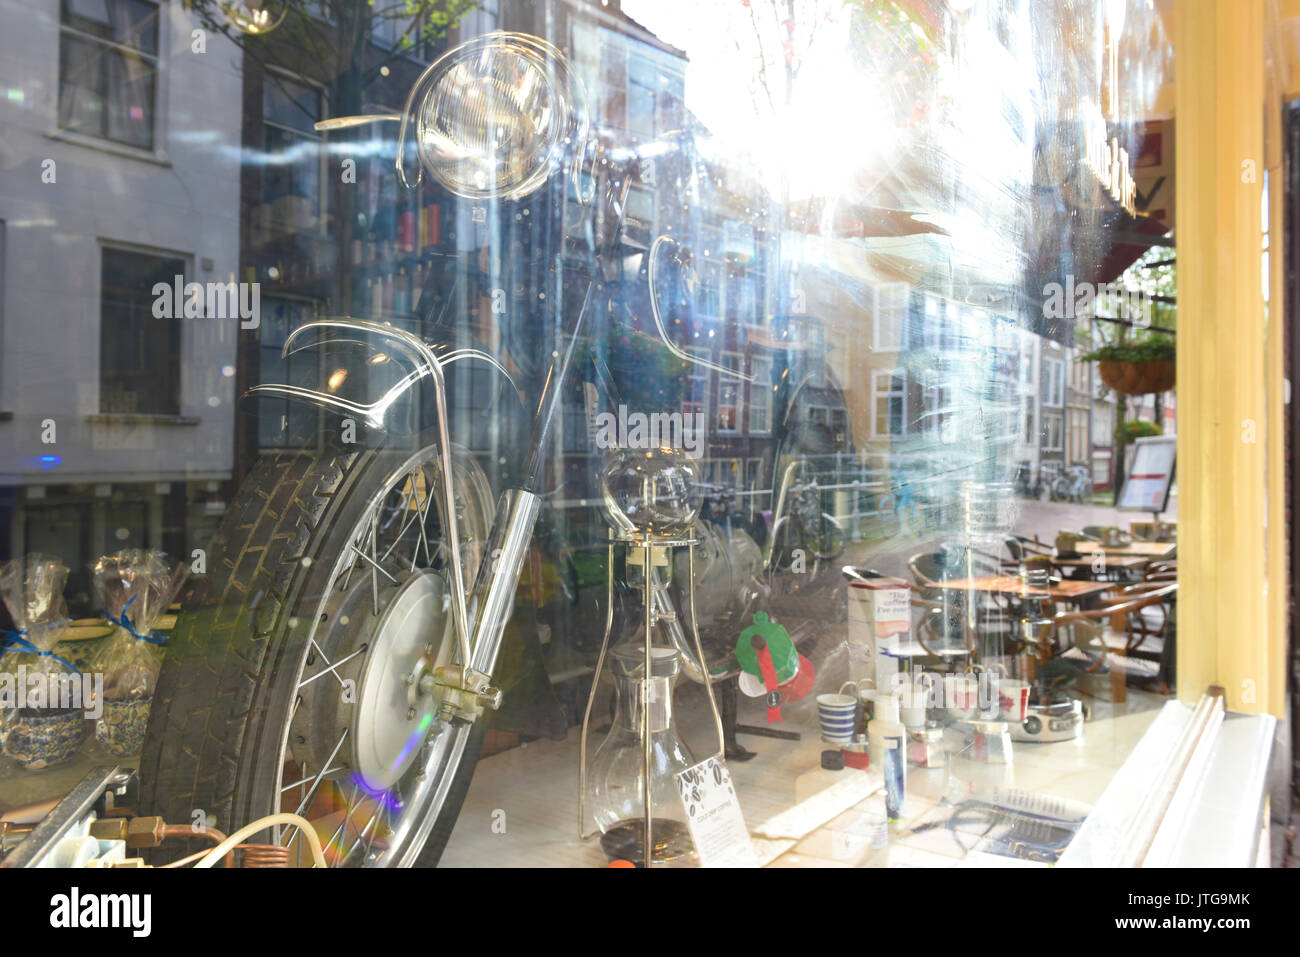 a shop window displaying a vintage bmw motorcycle in delft, south